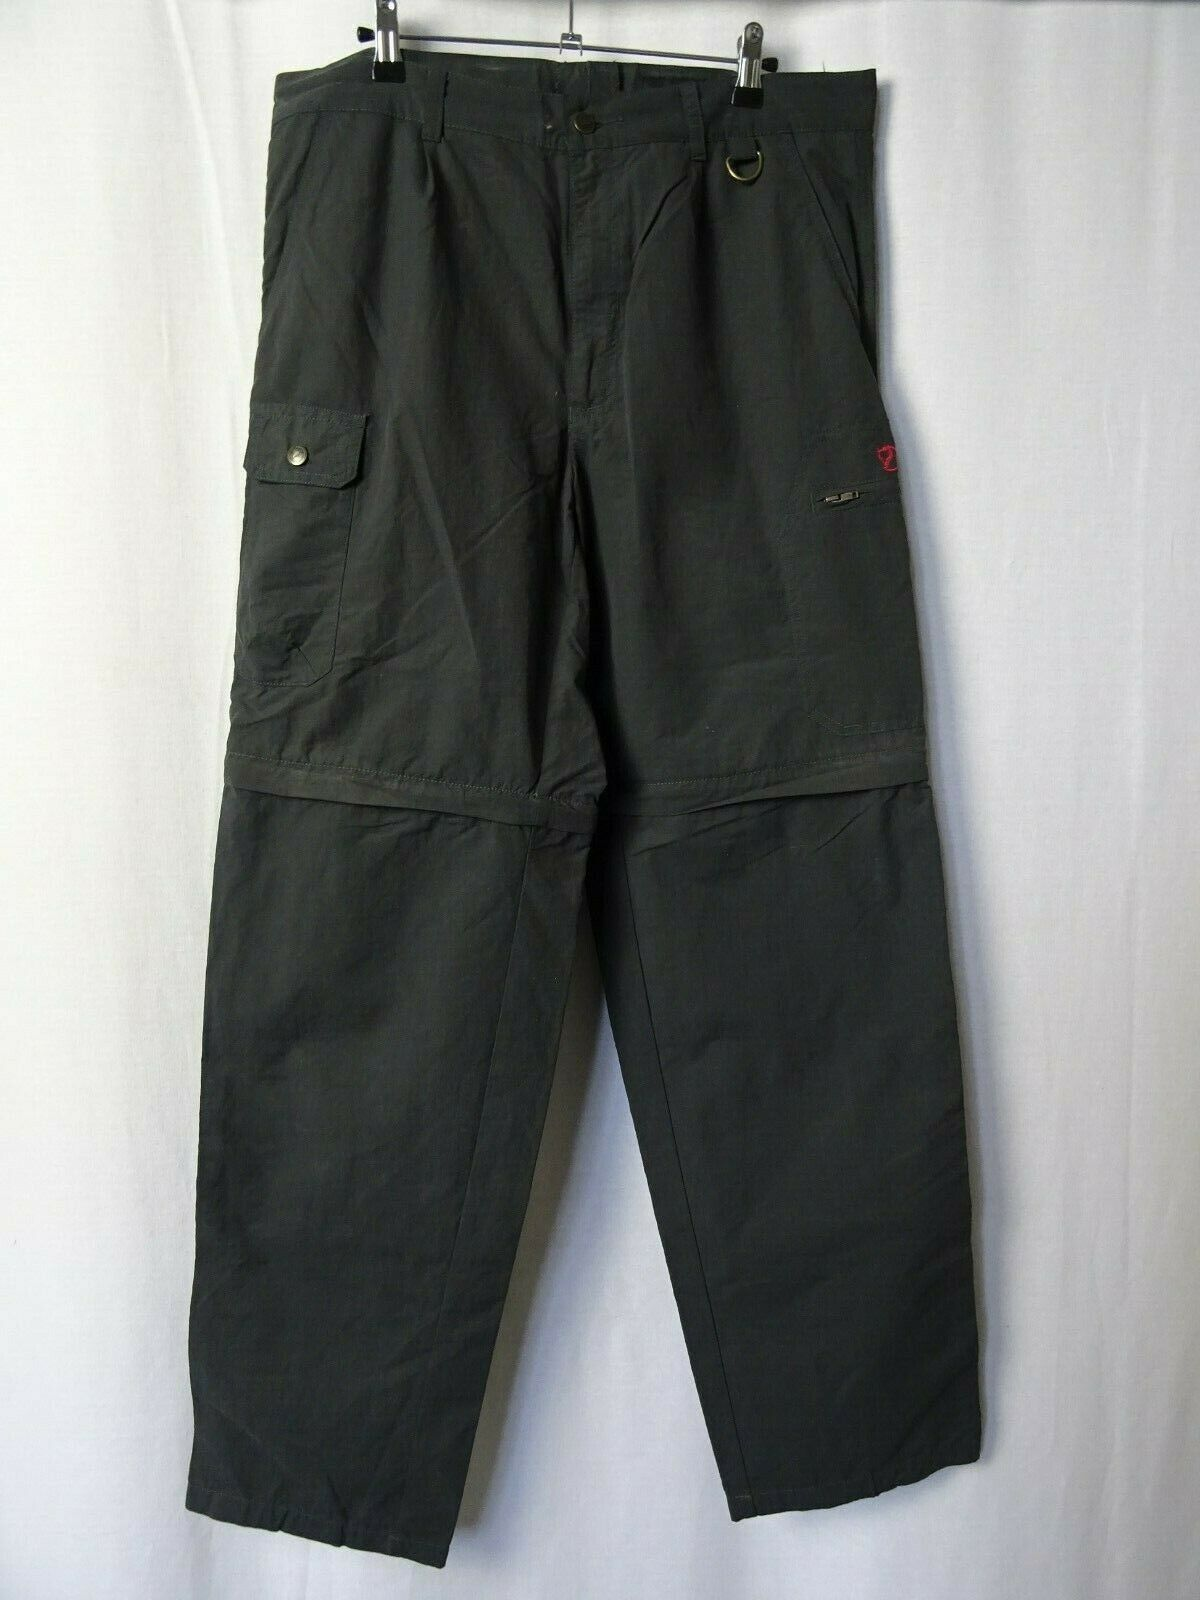 Men's Fjällräven Zip-Off Trousers Outdoor Pants W34 L33